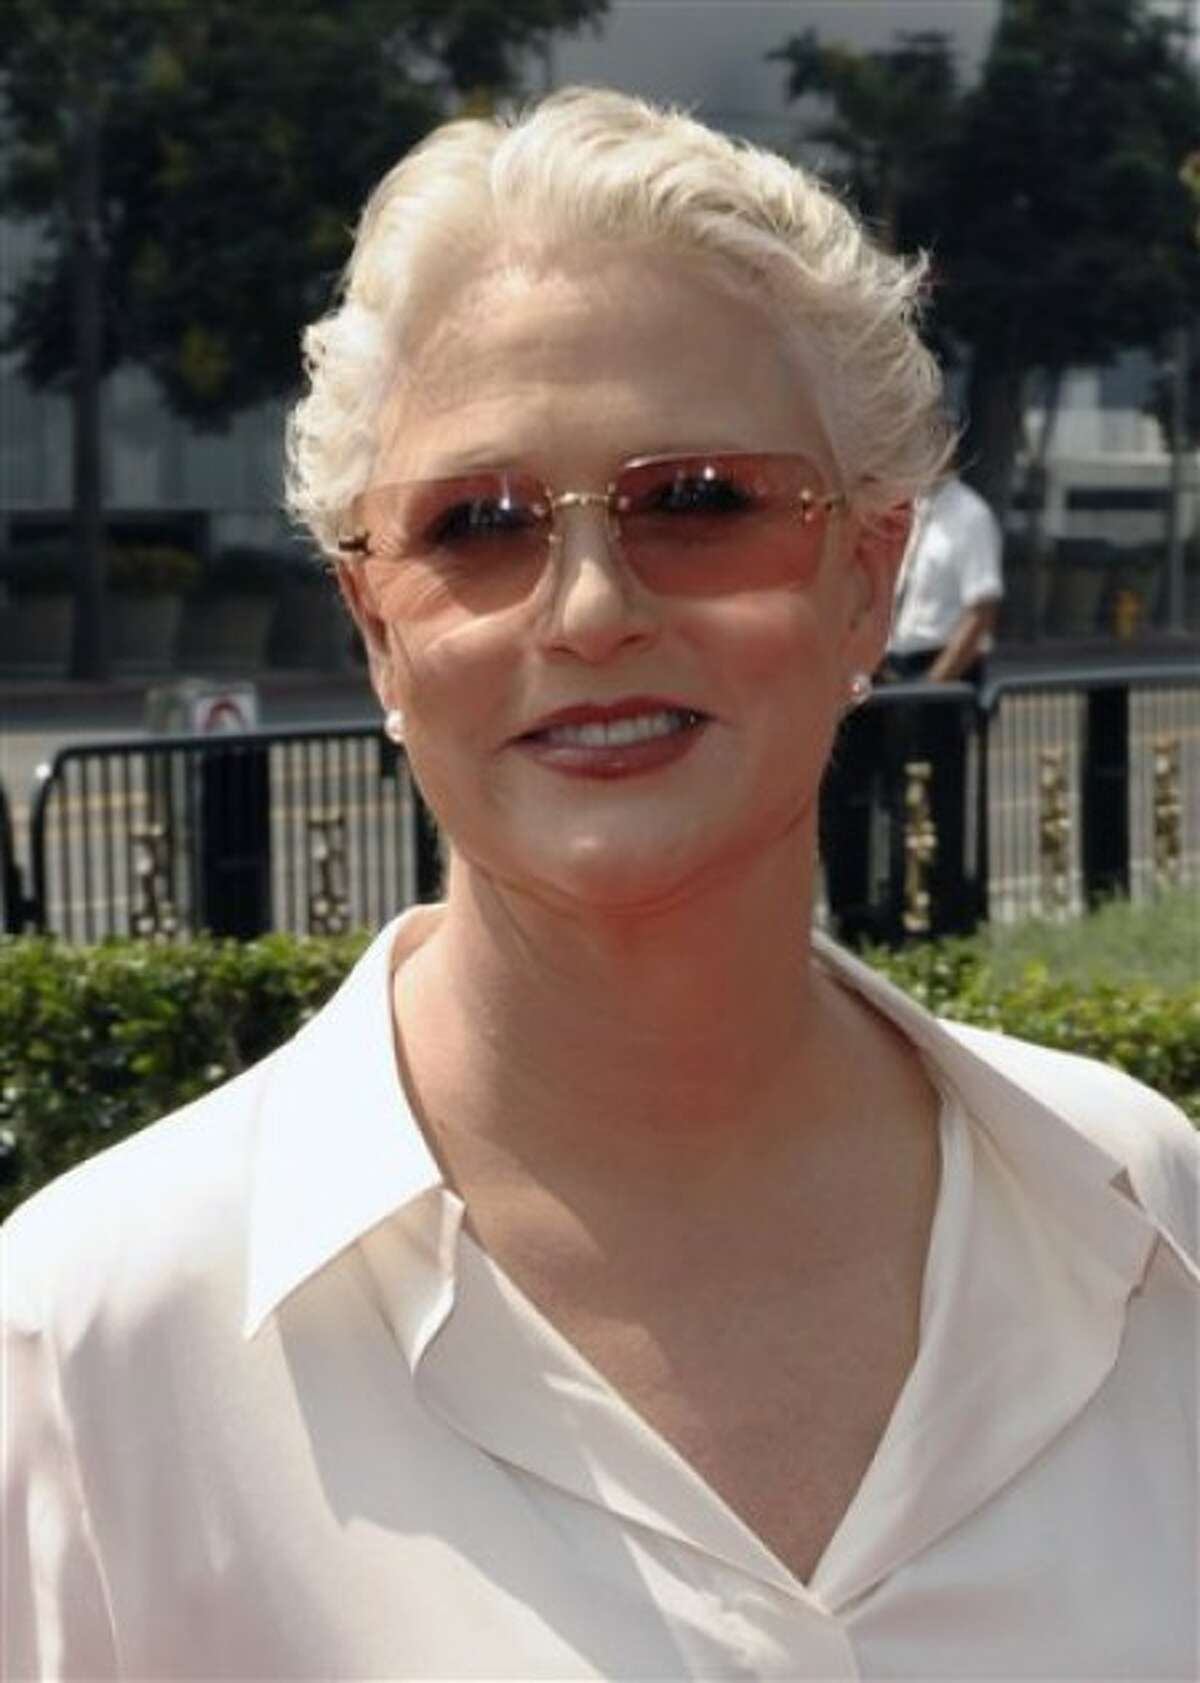 """Sharon Gless was nominated for an Emmy for supporting actress in a drama series on Thursday, July 8, 2010 for her role in """"Burn Notice."""" (AP Photo/Chris Pizzello, file)"""